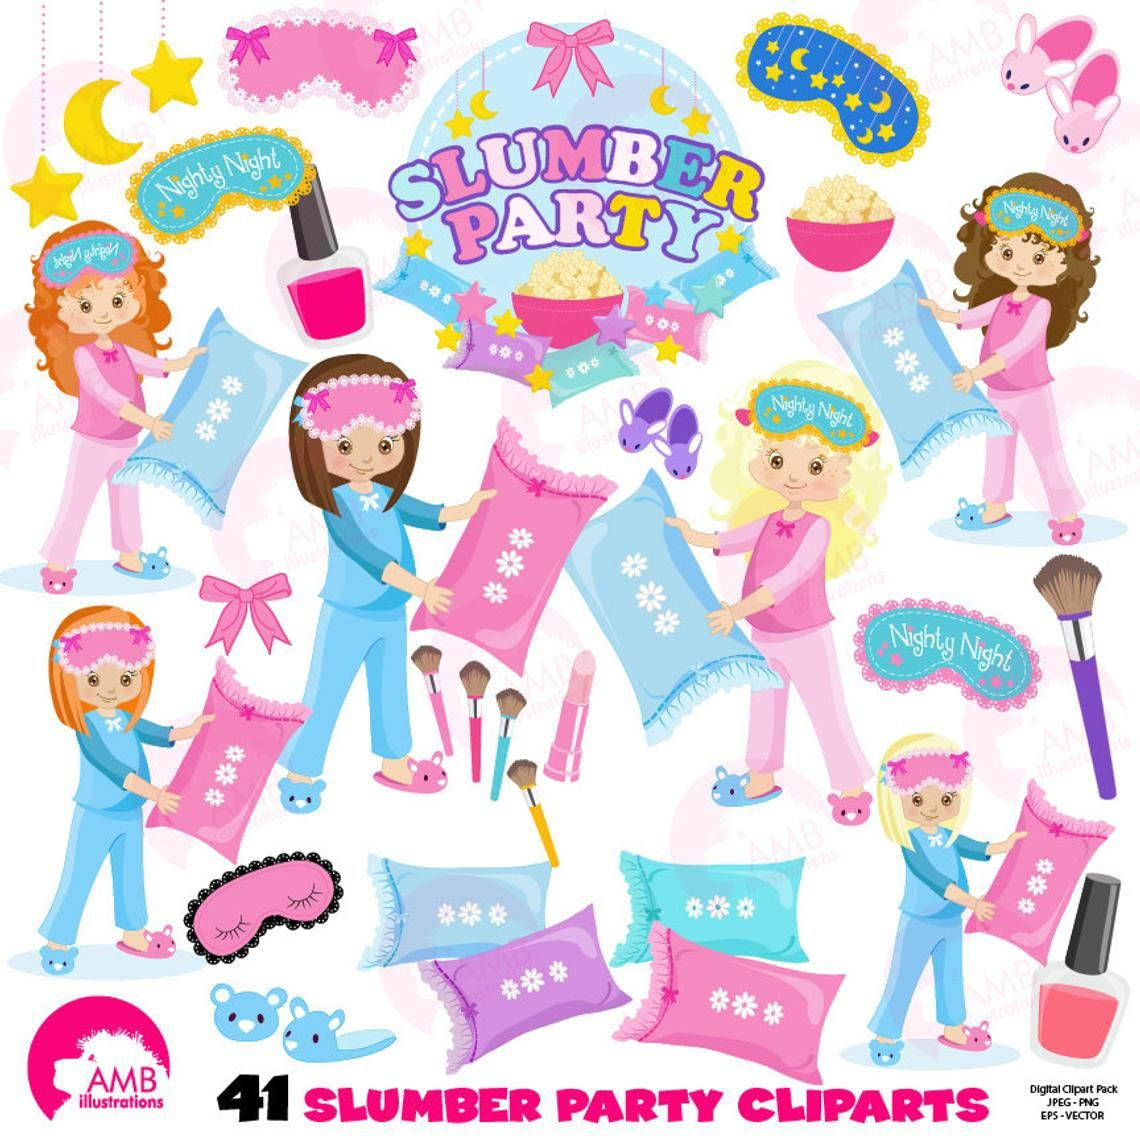 Pajama party clipart graphic free stock Slumber party, girls sleep over, pyjama party clipart, Birthday ... graphic free stock